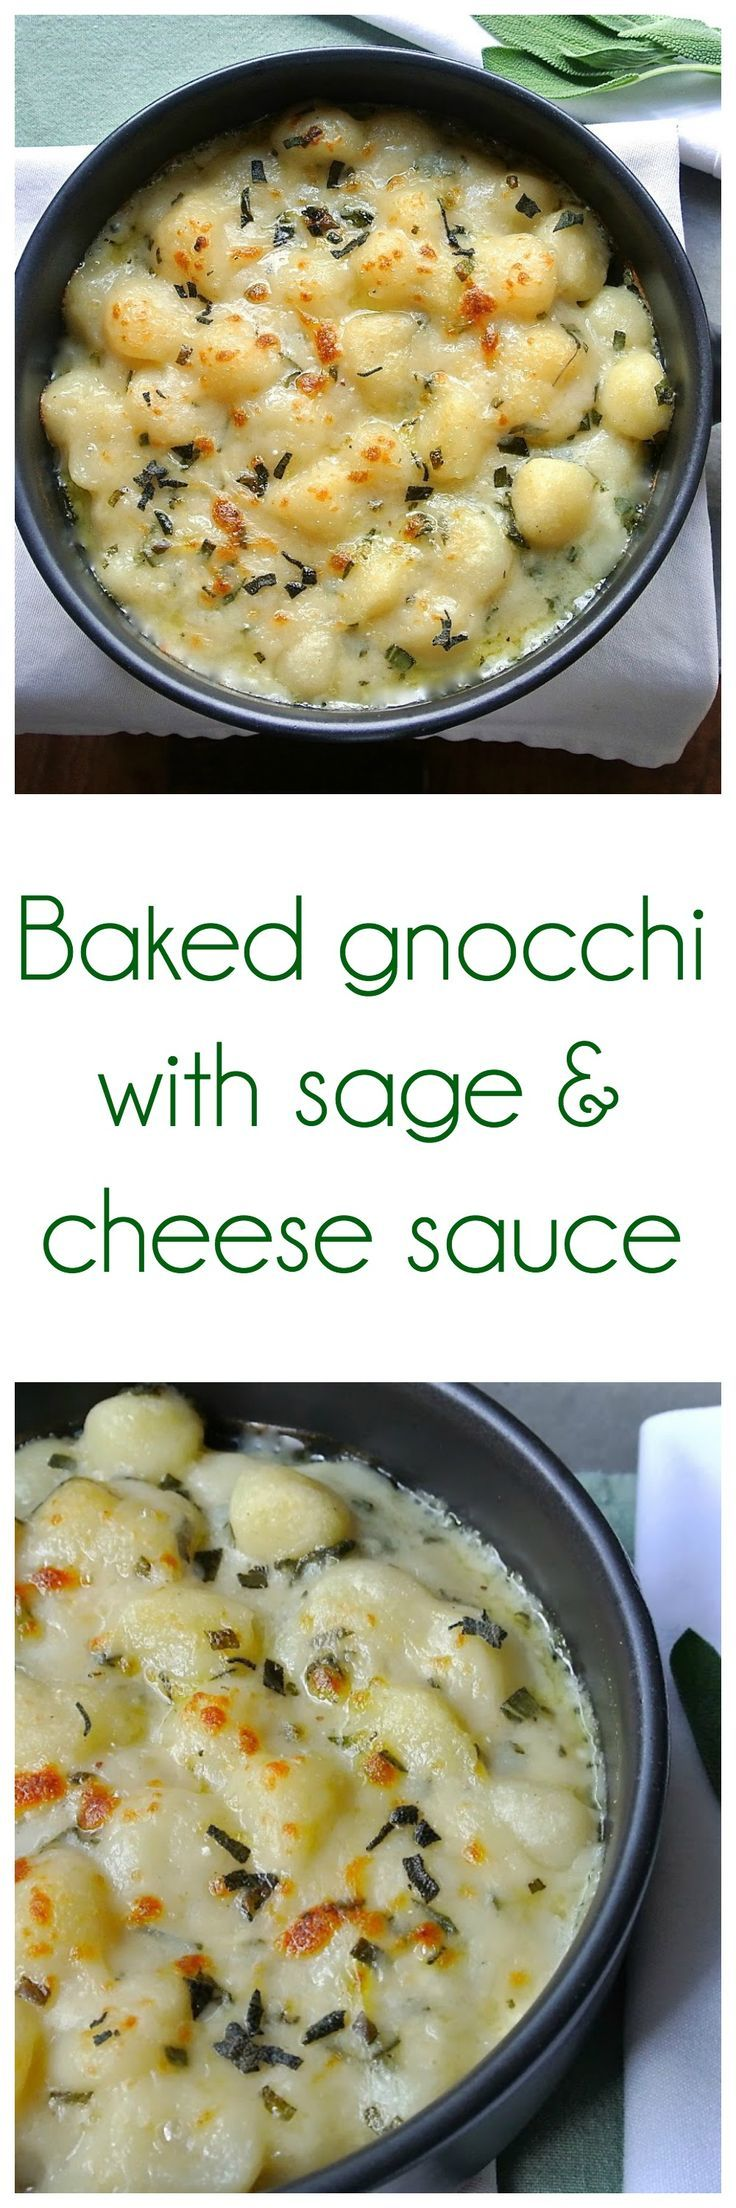 Homemade gnocchi bathed in a creamy cheese and sage sauce. Comfort ...